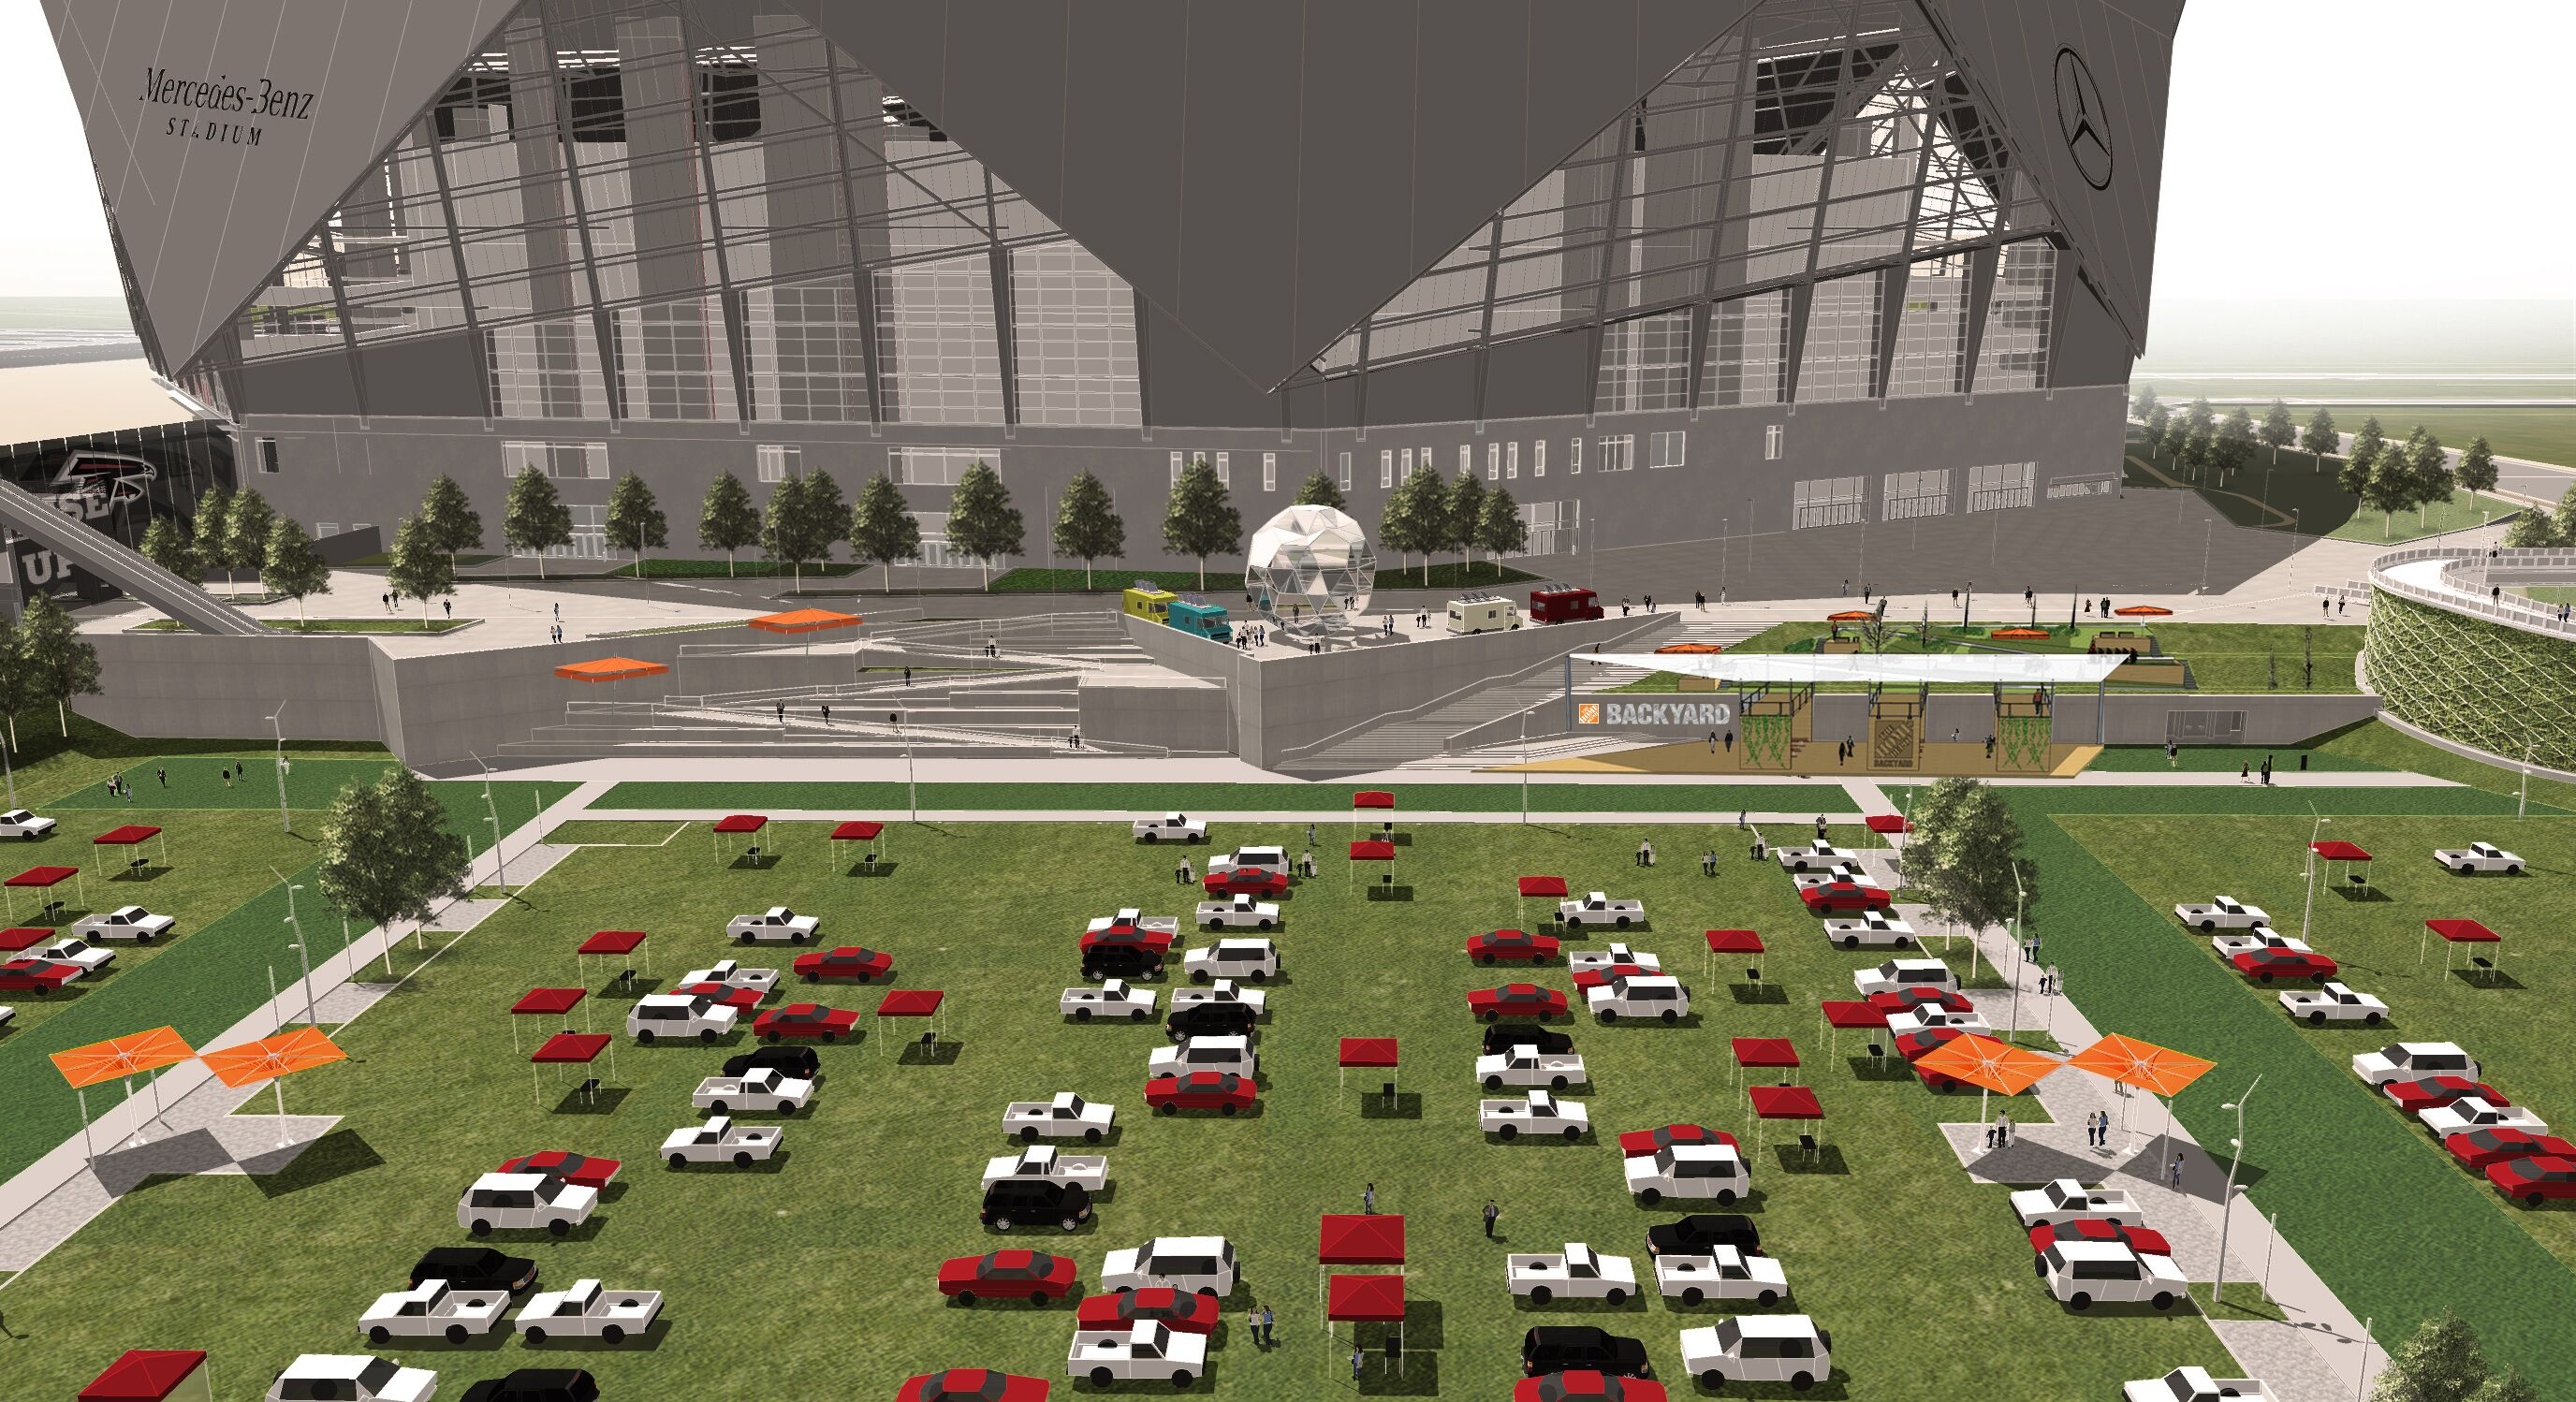 The new greenspace planned for the Atlanta Falcons new stadium in downtown Atlanta.